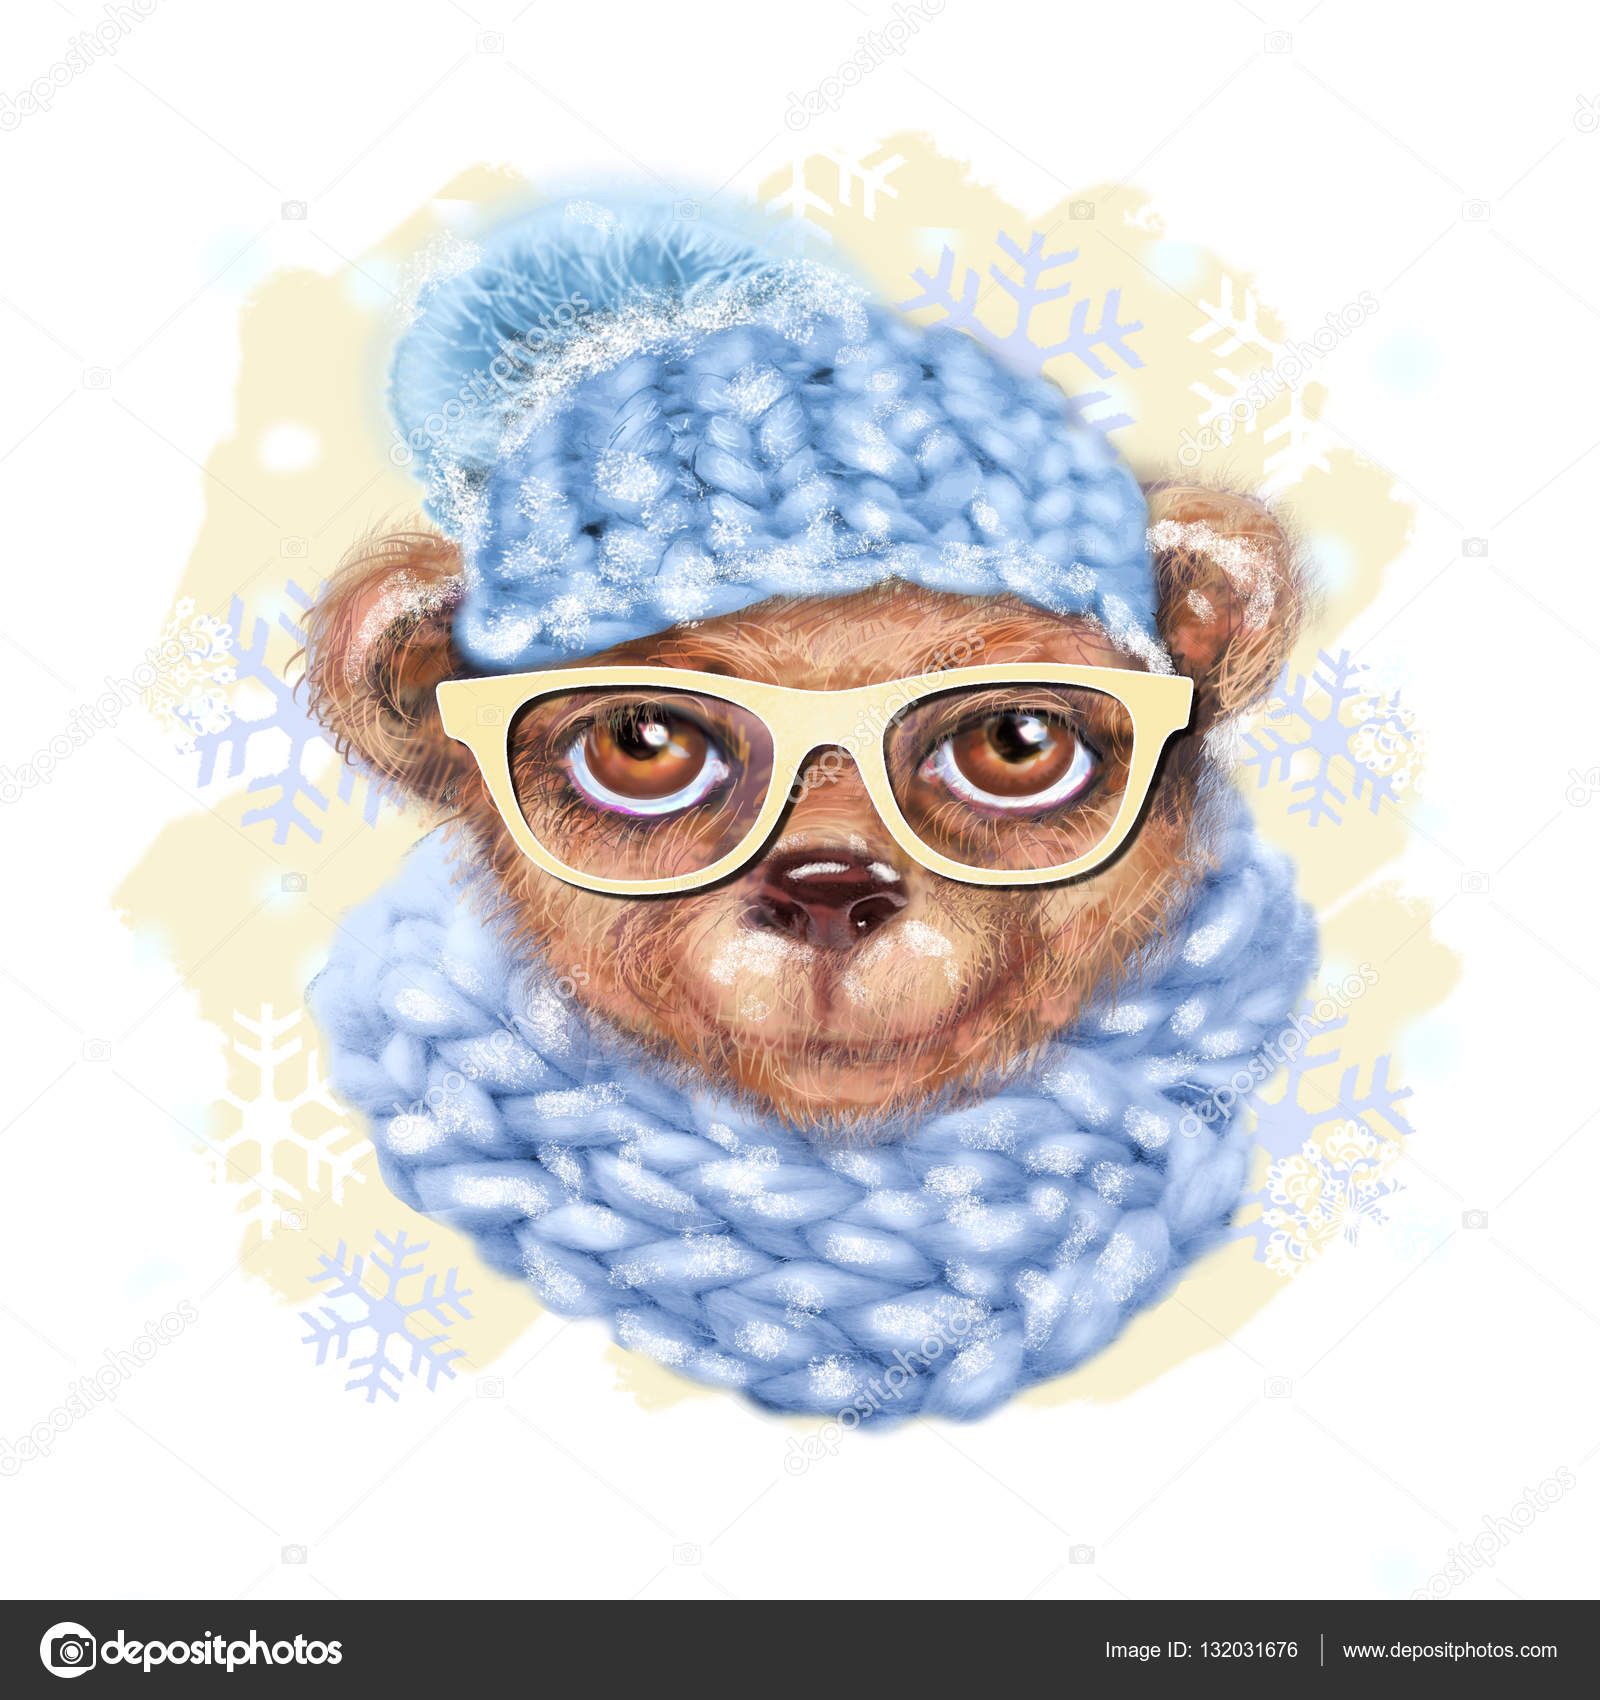 Drawn scarf hipster And of bear glasses with